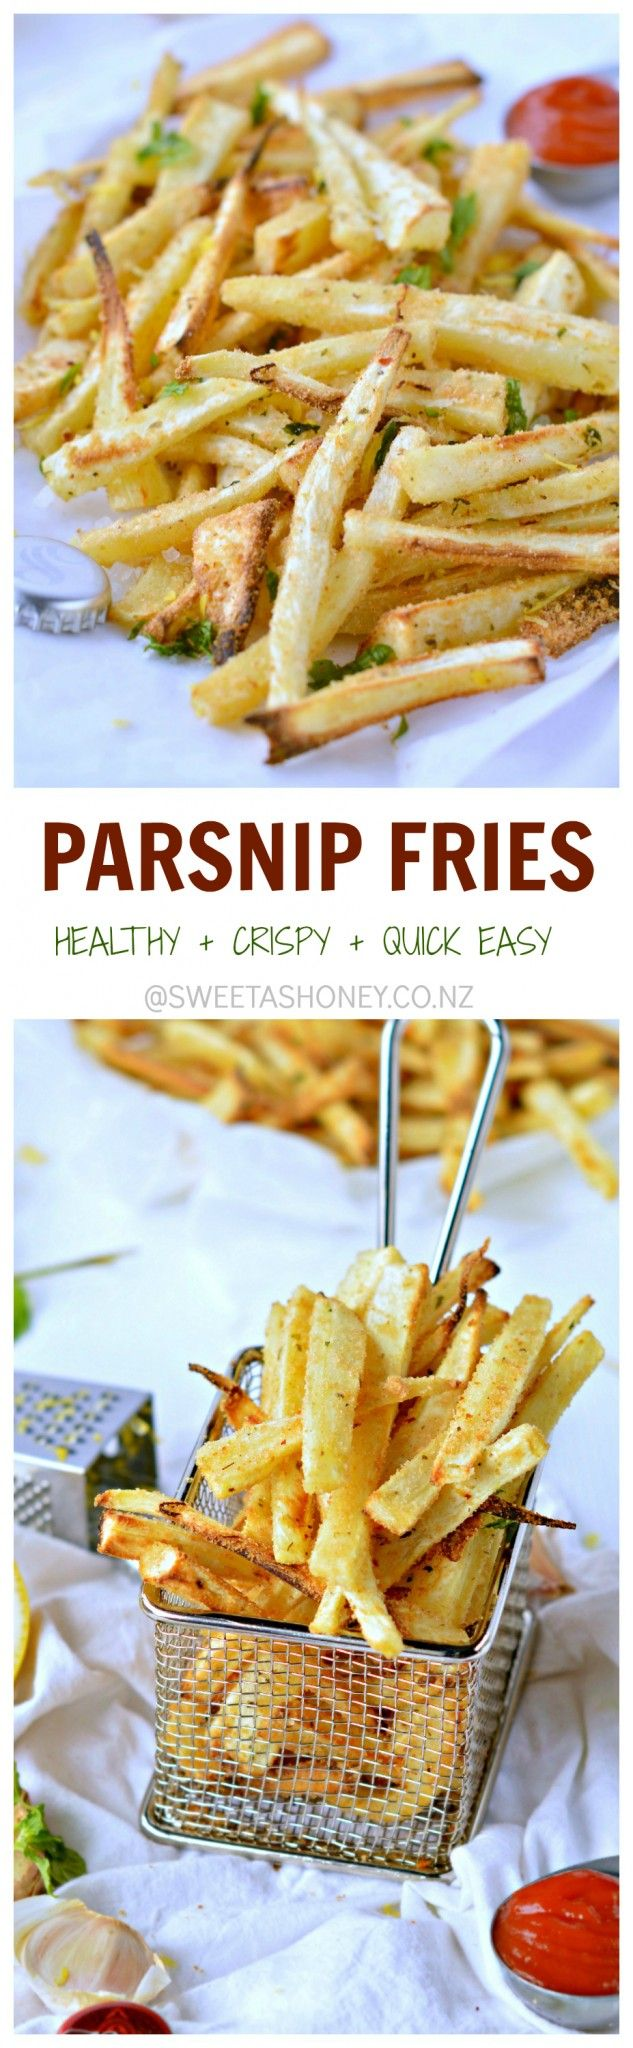 1000+ ideas about Parsnip Fries on Pinterest | Cooking ...